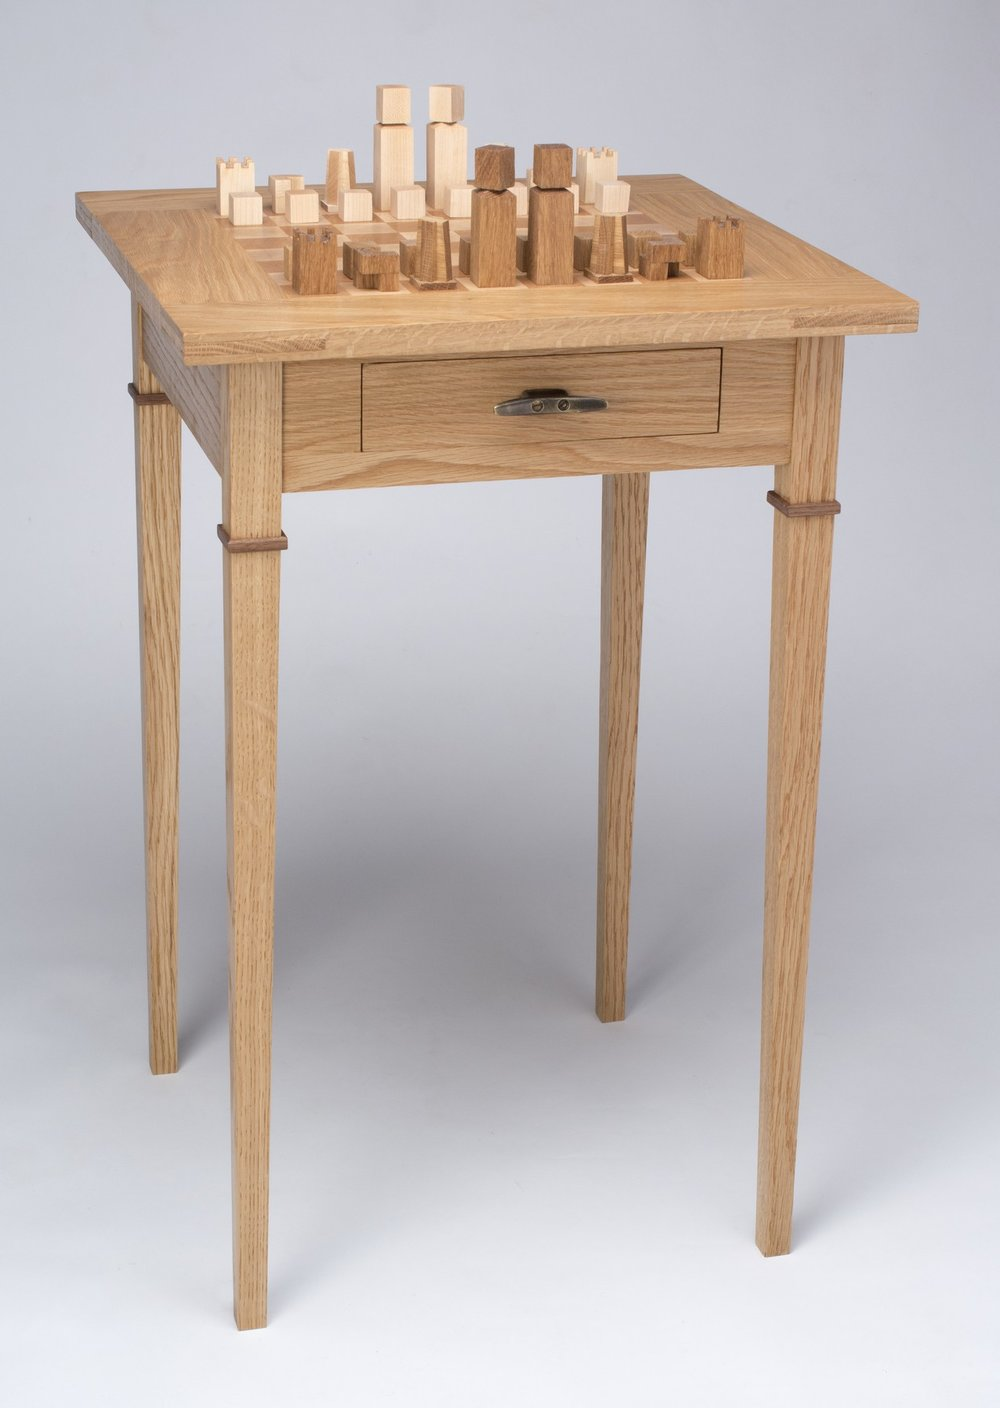 Artisan Designed Chess Table